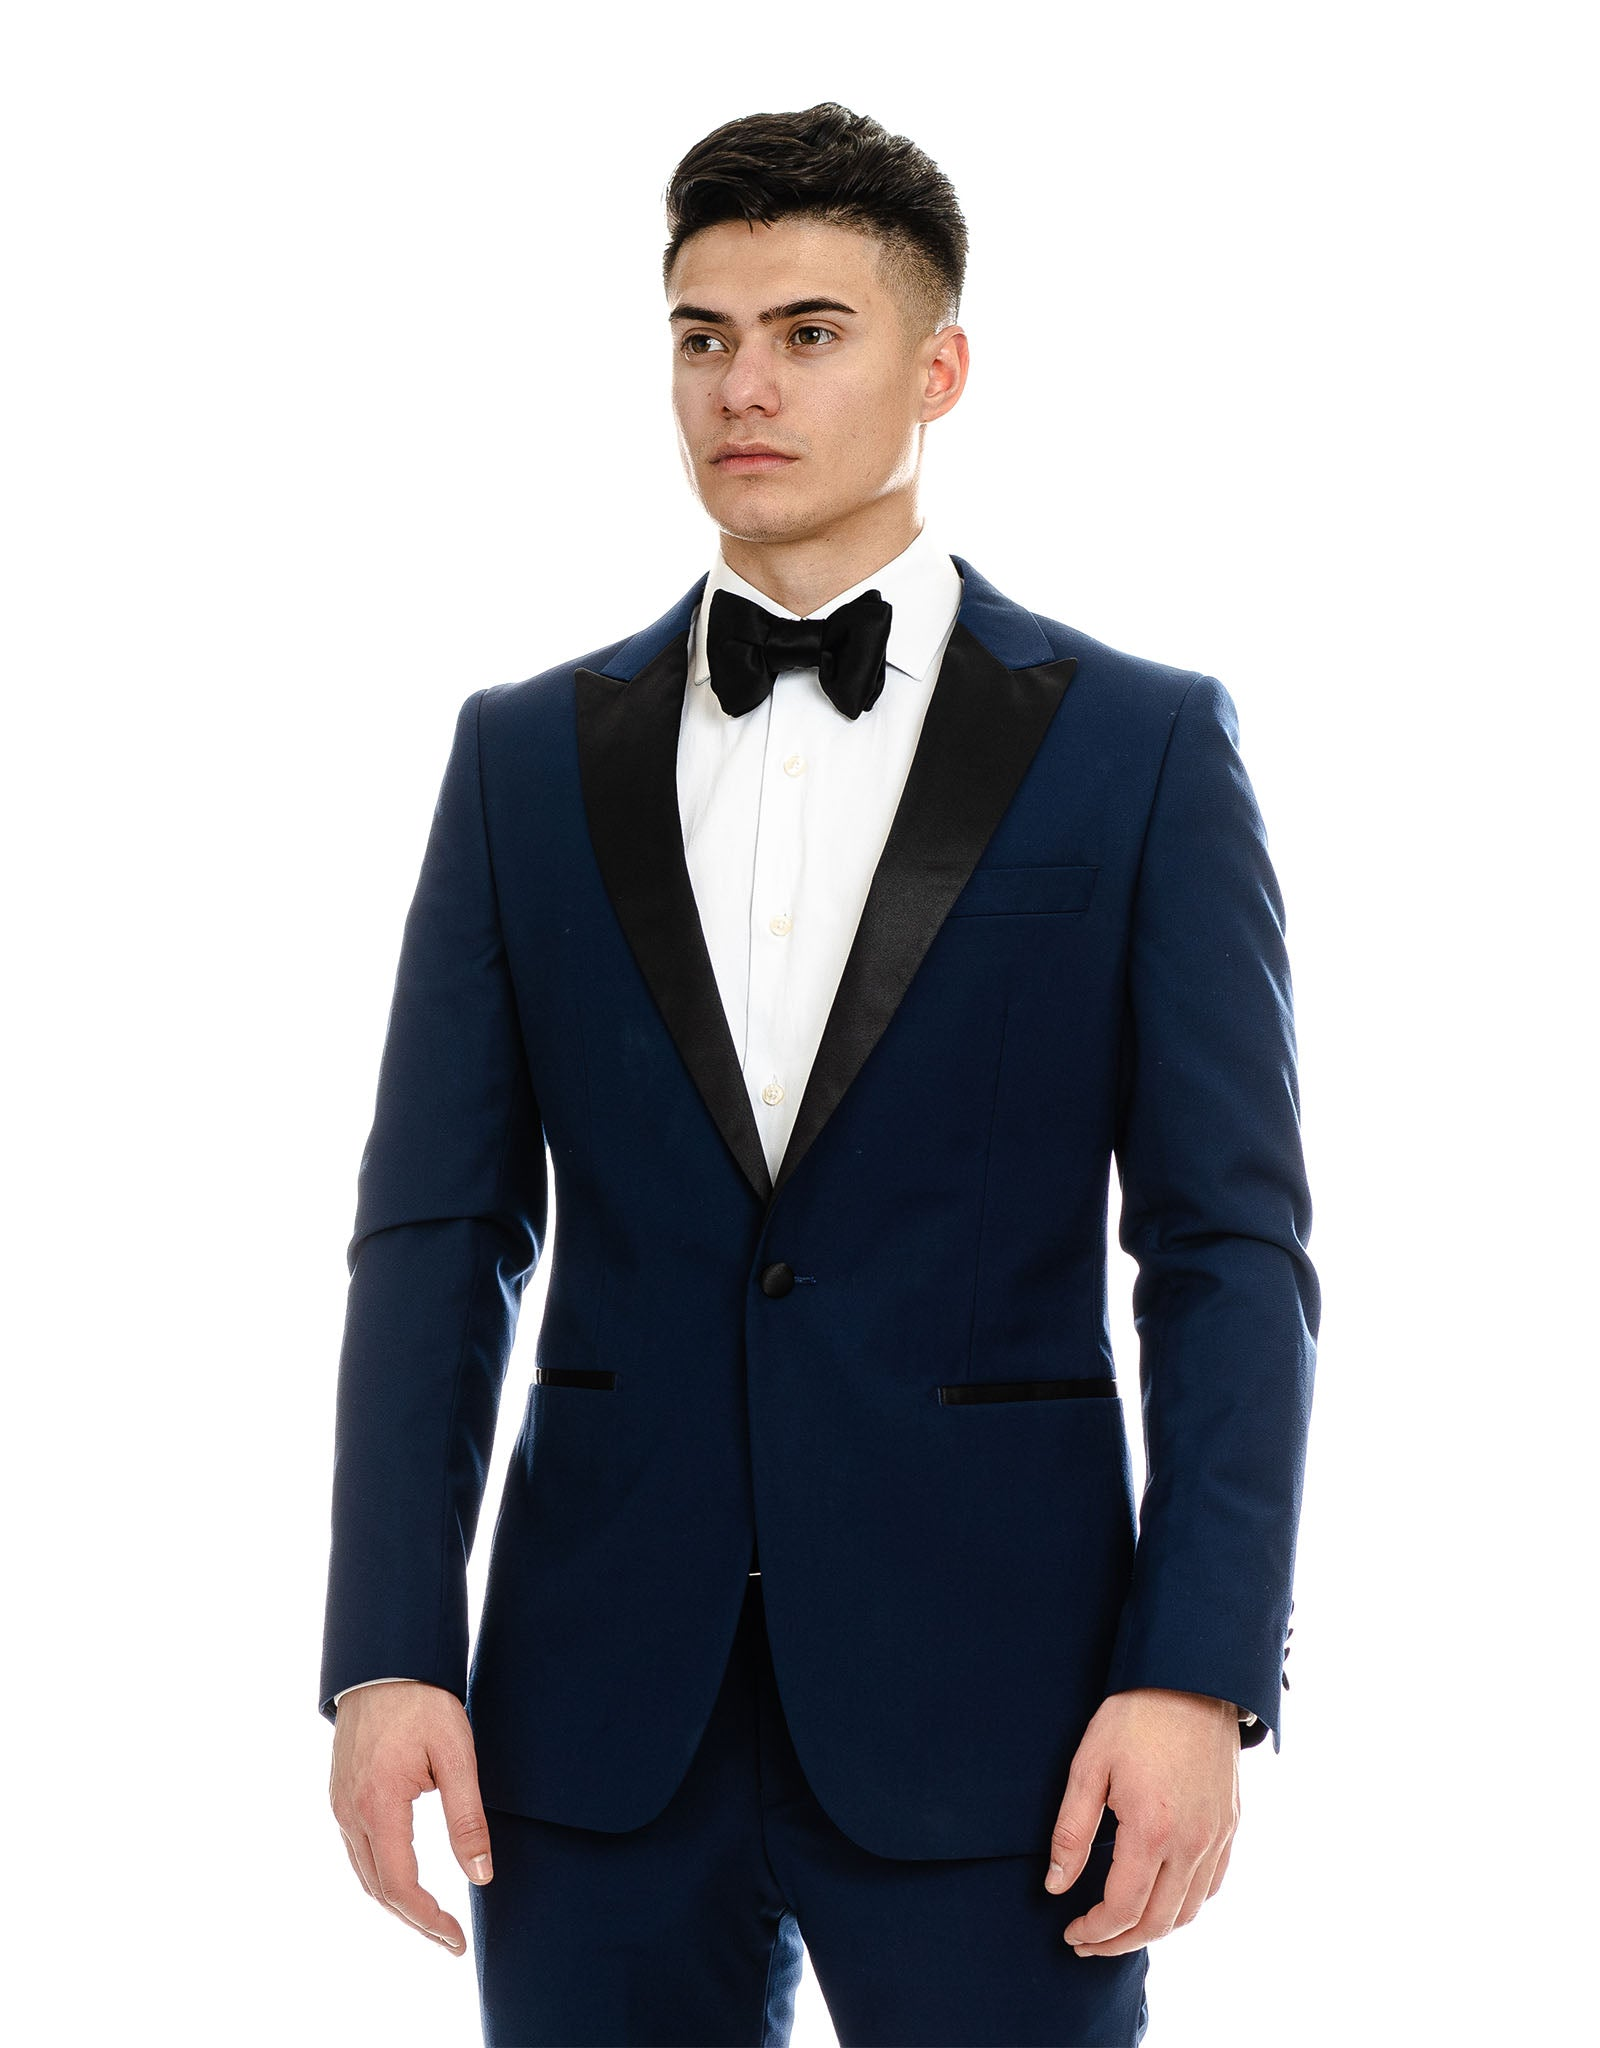 Modern Man  Tuxedo, Trouser, Blazer, Suit, Slim Fit, Skinny Fit, Tapered Suits, Wool Suits, Prom Suit